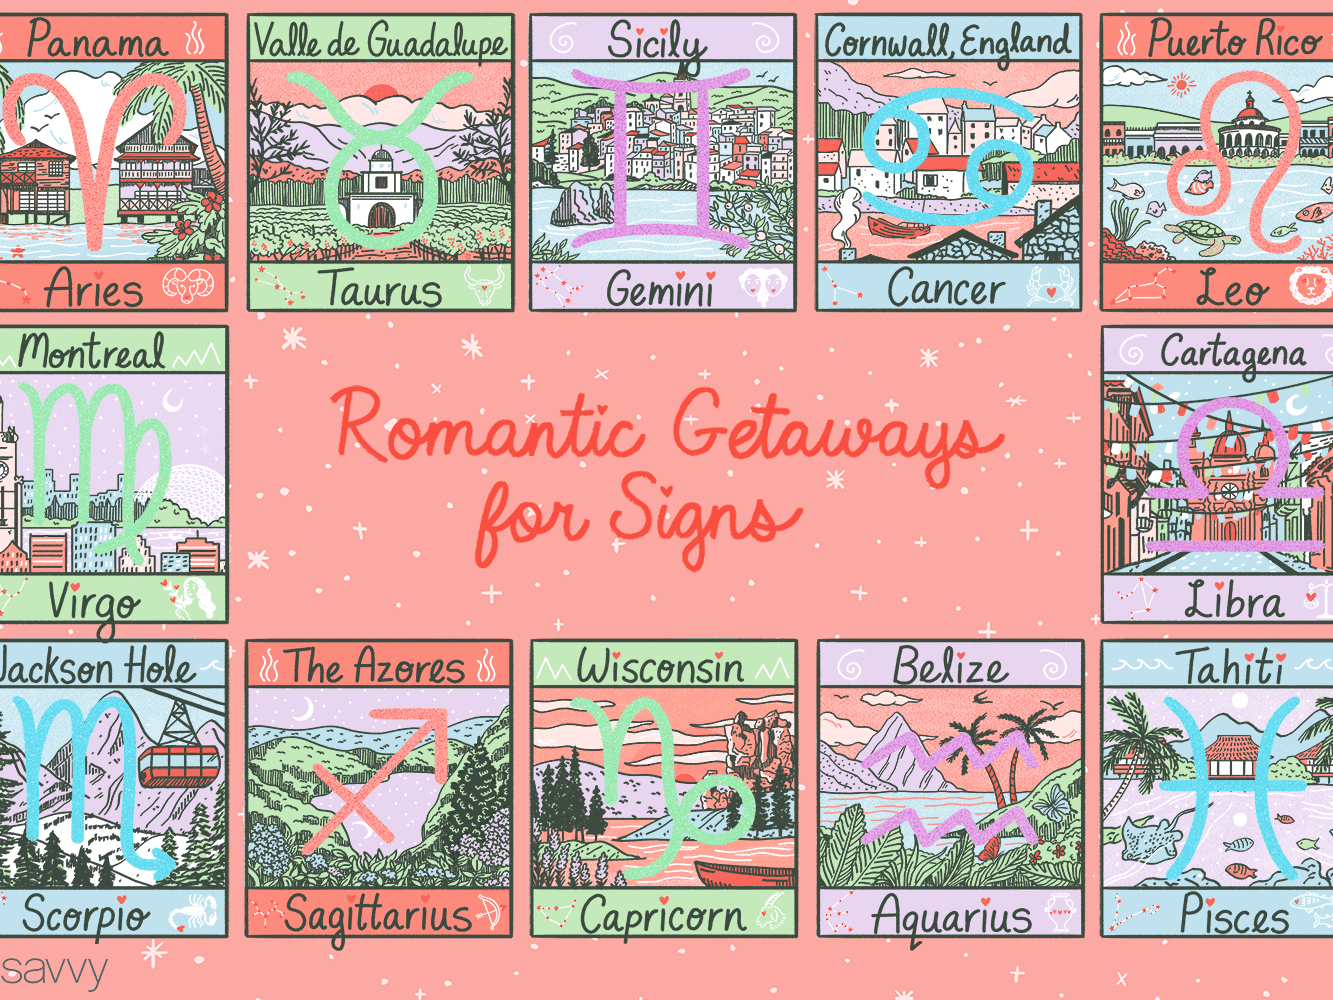 Where to Go for Romance in 2019 Based on Your Zodiac Sign